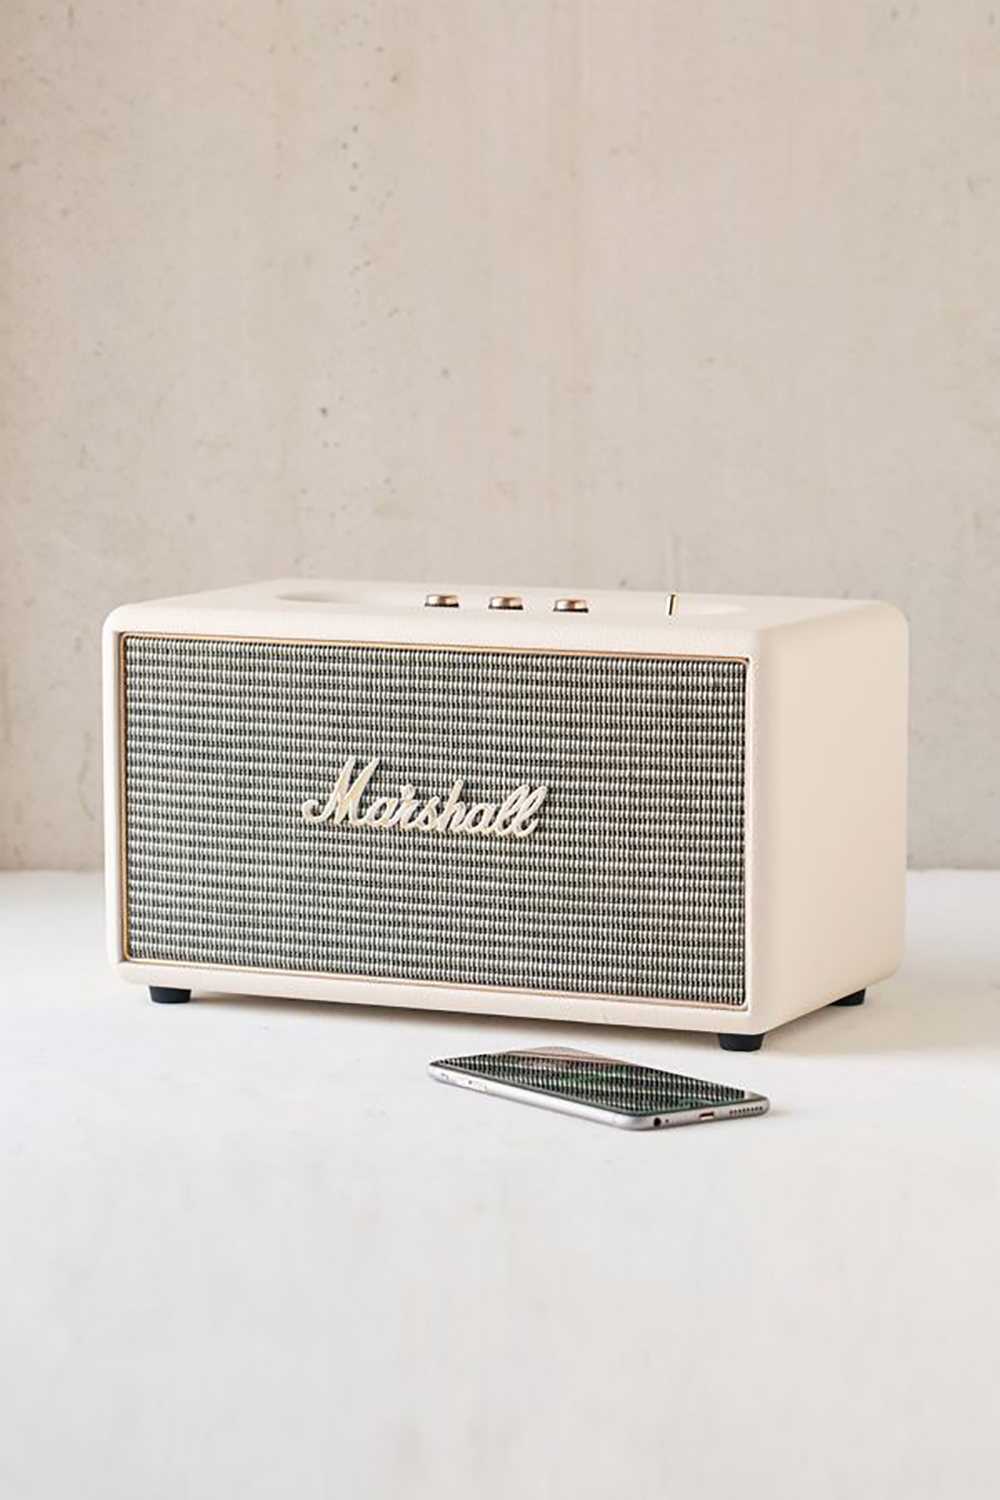 Marshall Stanmore Wireless Speaker: Urban Outfitters Home Sale